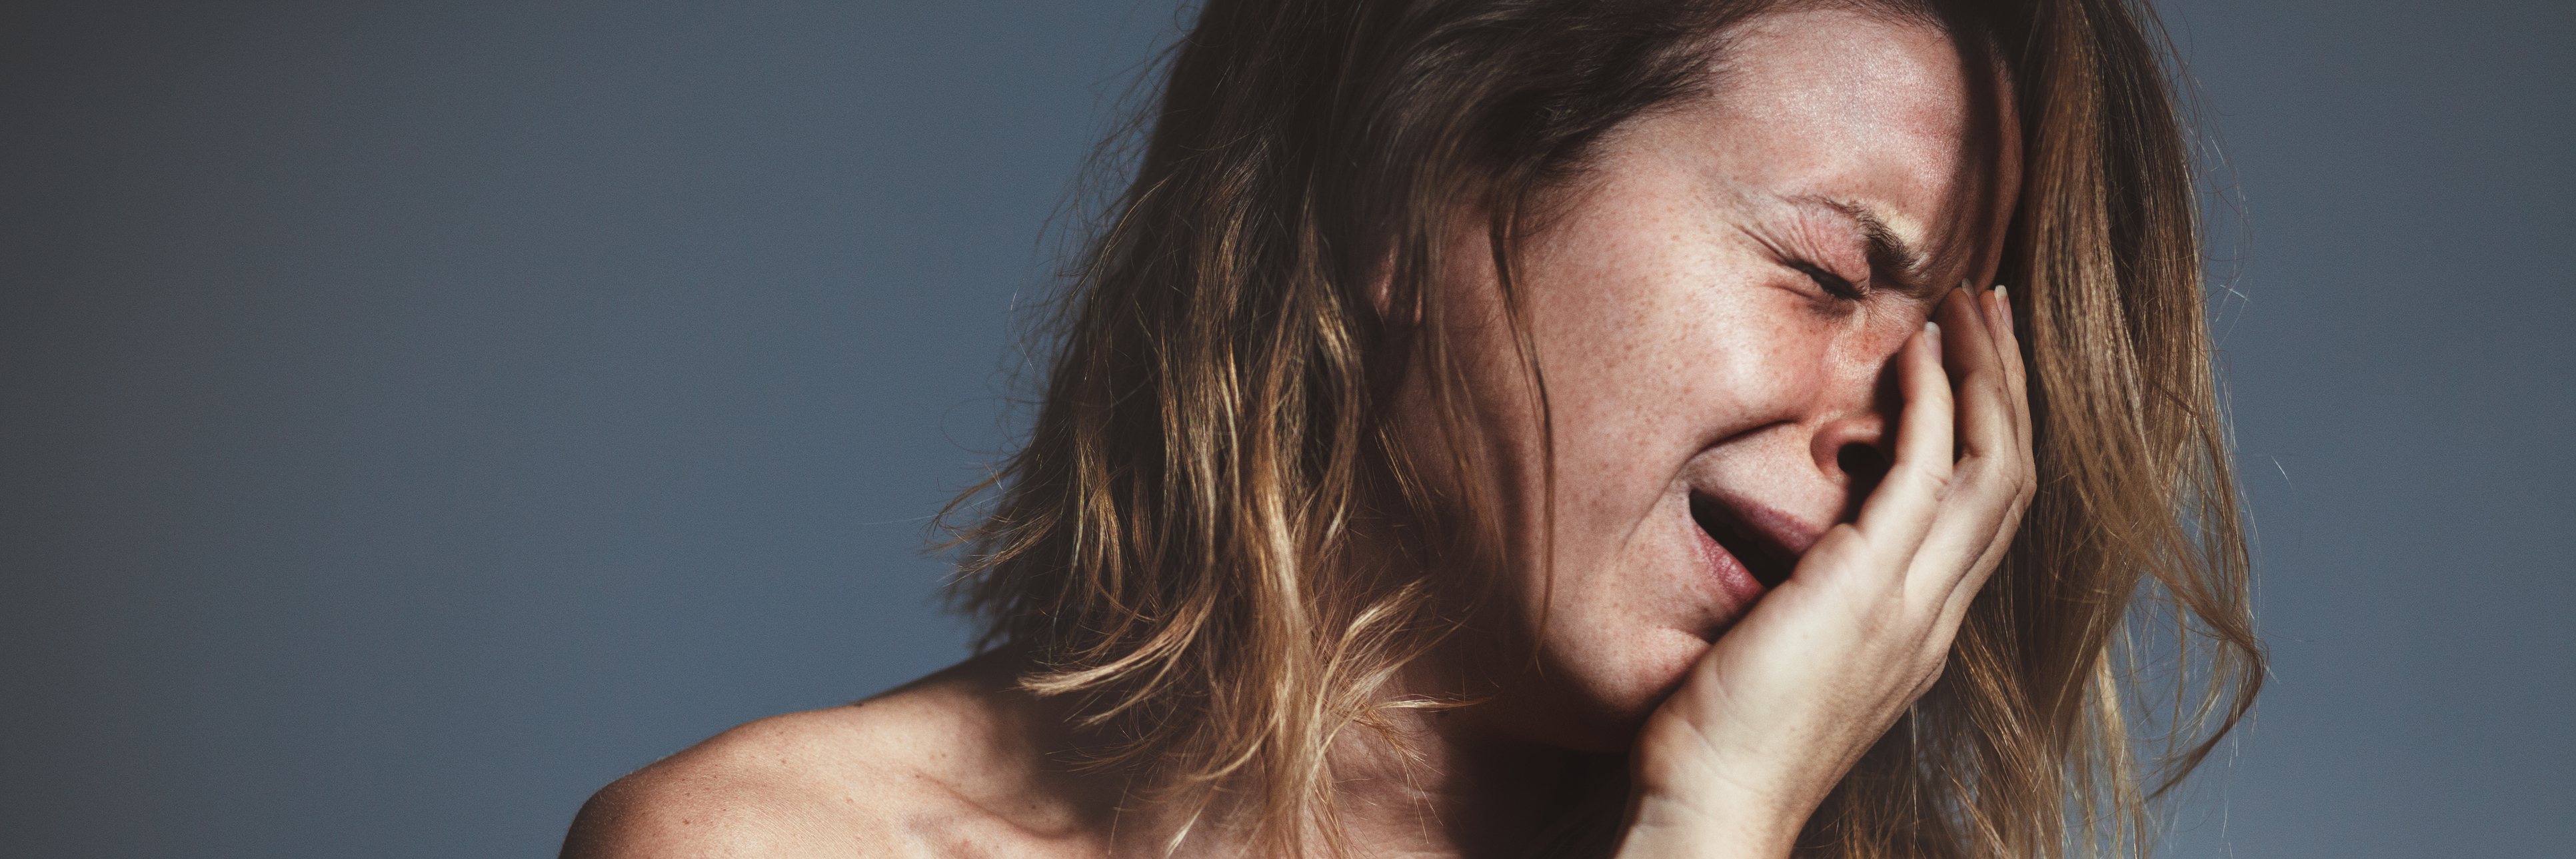 young woman in distress crying on gray background